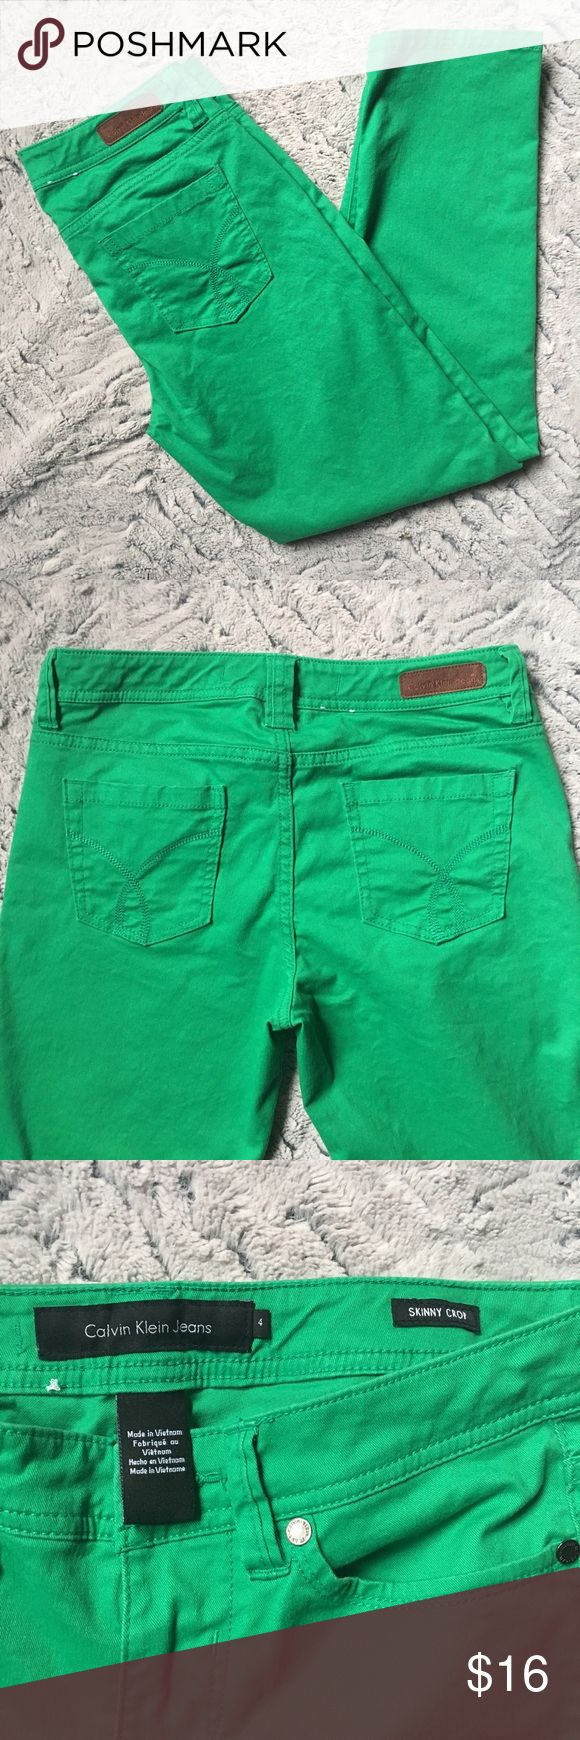 """Calvin Klein Skinny Crop Kelly Green Pants Excellent condition Calvin Klein Skinny Crop Jeans. Bright Kelly green. No flaws! 5 pocket design. Some stretch with 97% cotton, 3% elastane. Measurements I have taken: inseam 25"""", waist laying flat 14"""",  hips 35"""", front rise 8.5"""", leg opening 13"""". Offers welcome on any of my listings. Calvin Klein Jeans Jeans Ankle & Cropped"""